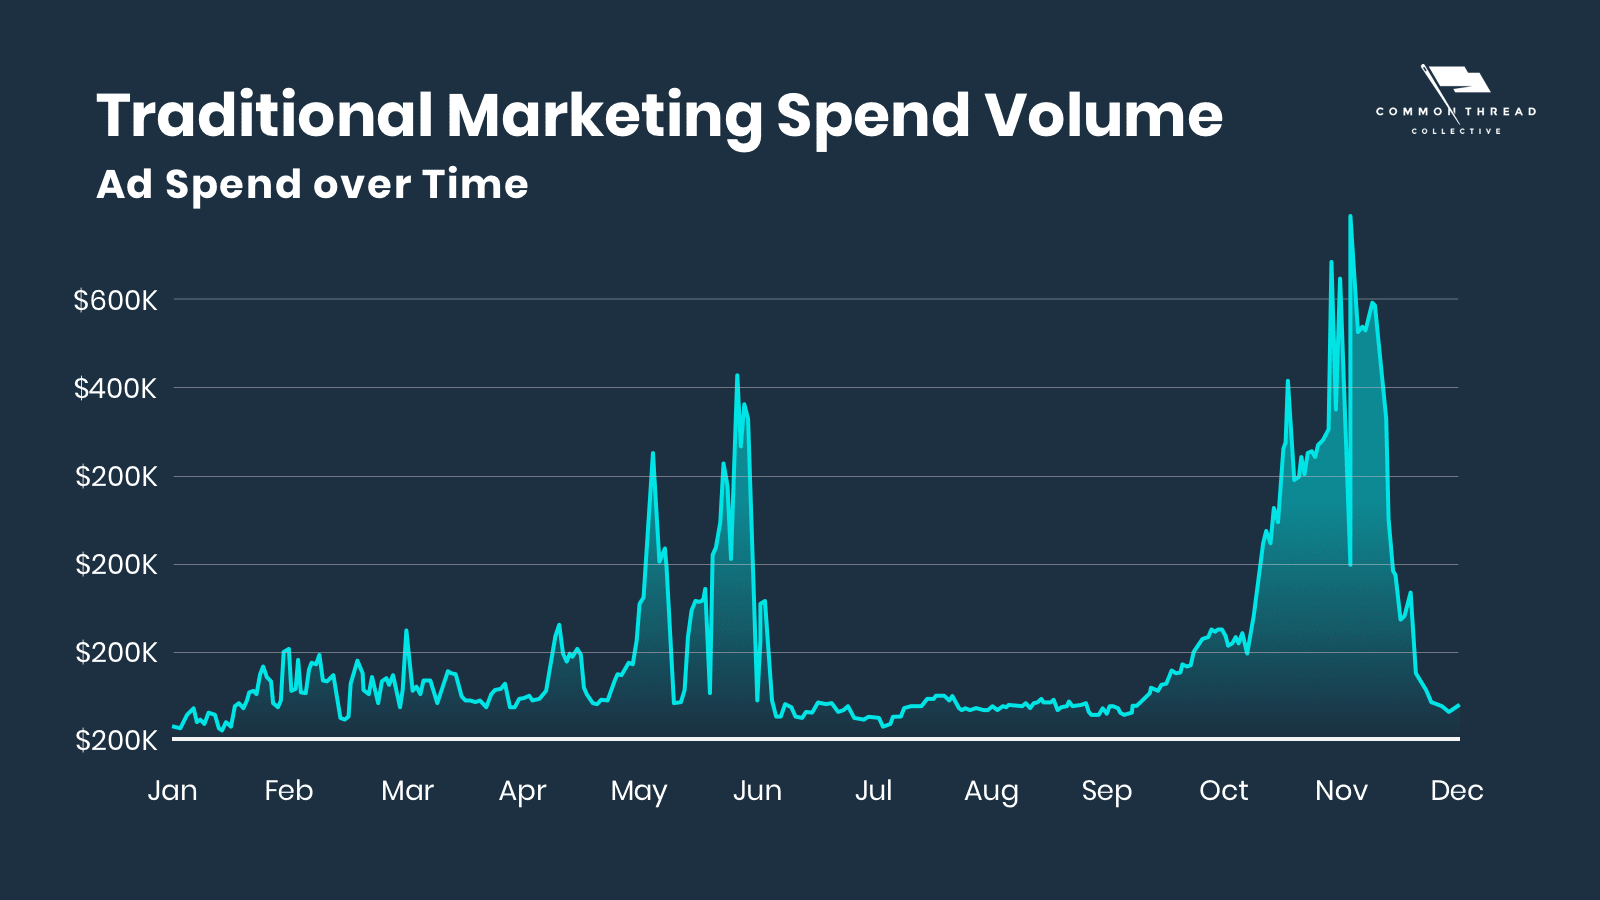 traditional marketing ad spend volume over time for ecommerce businesses